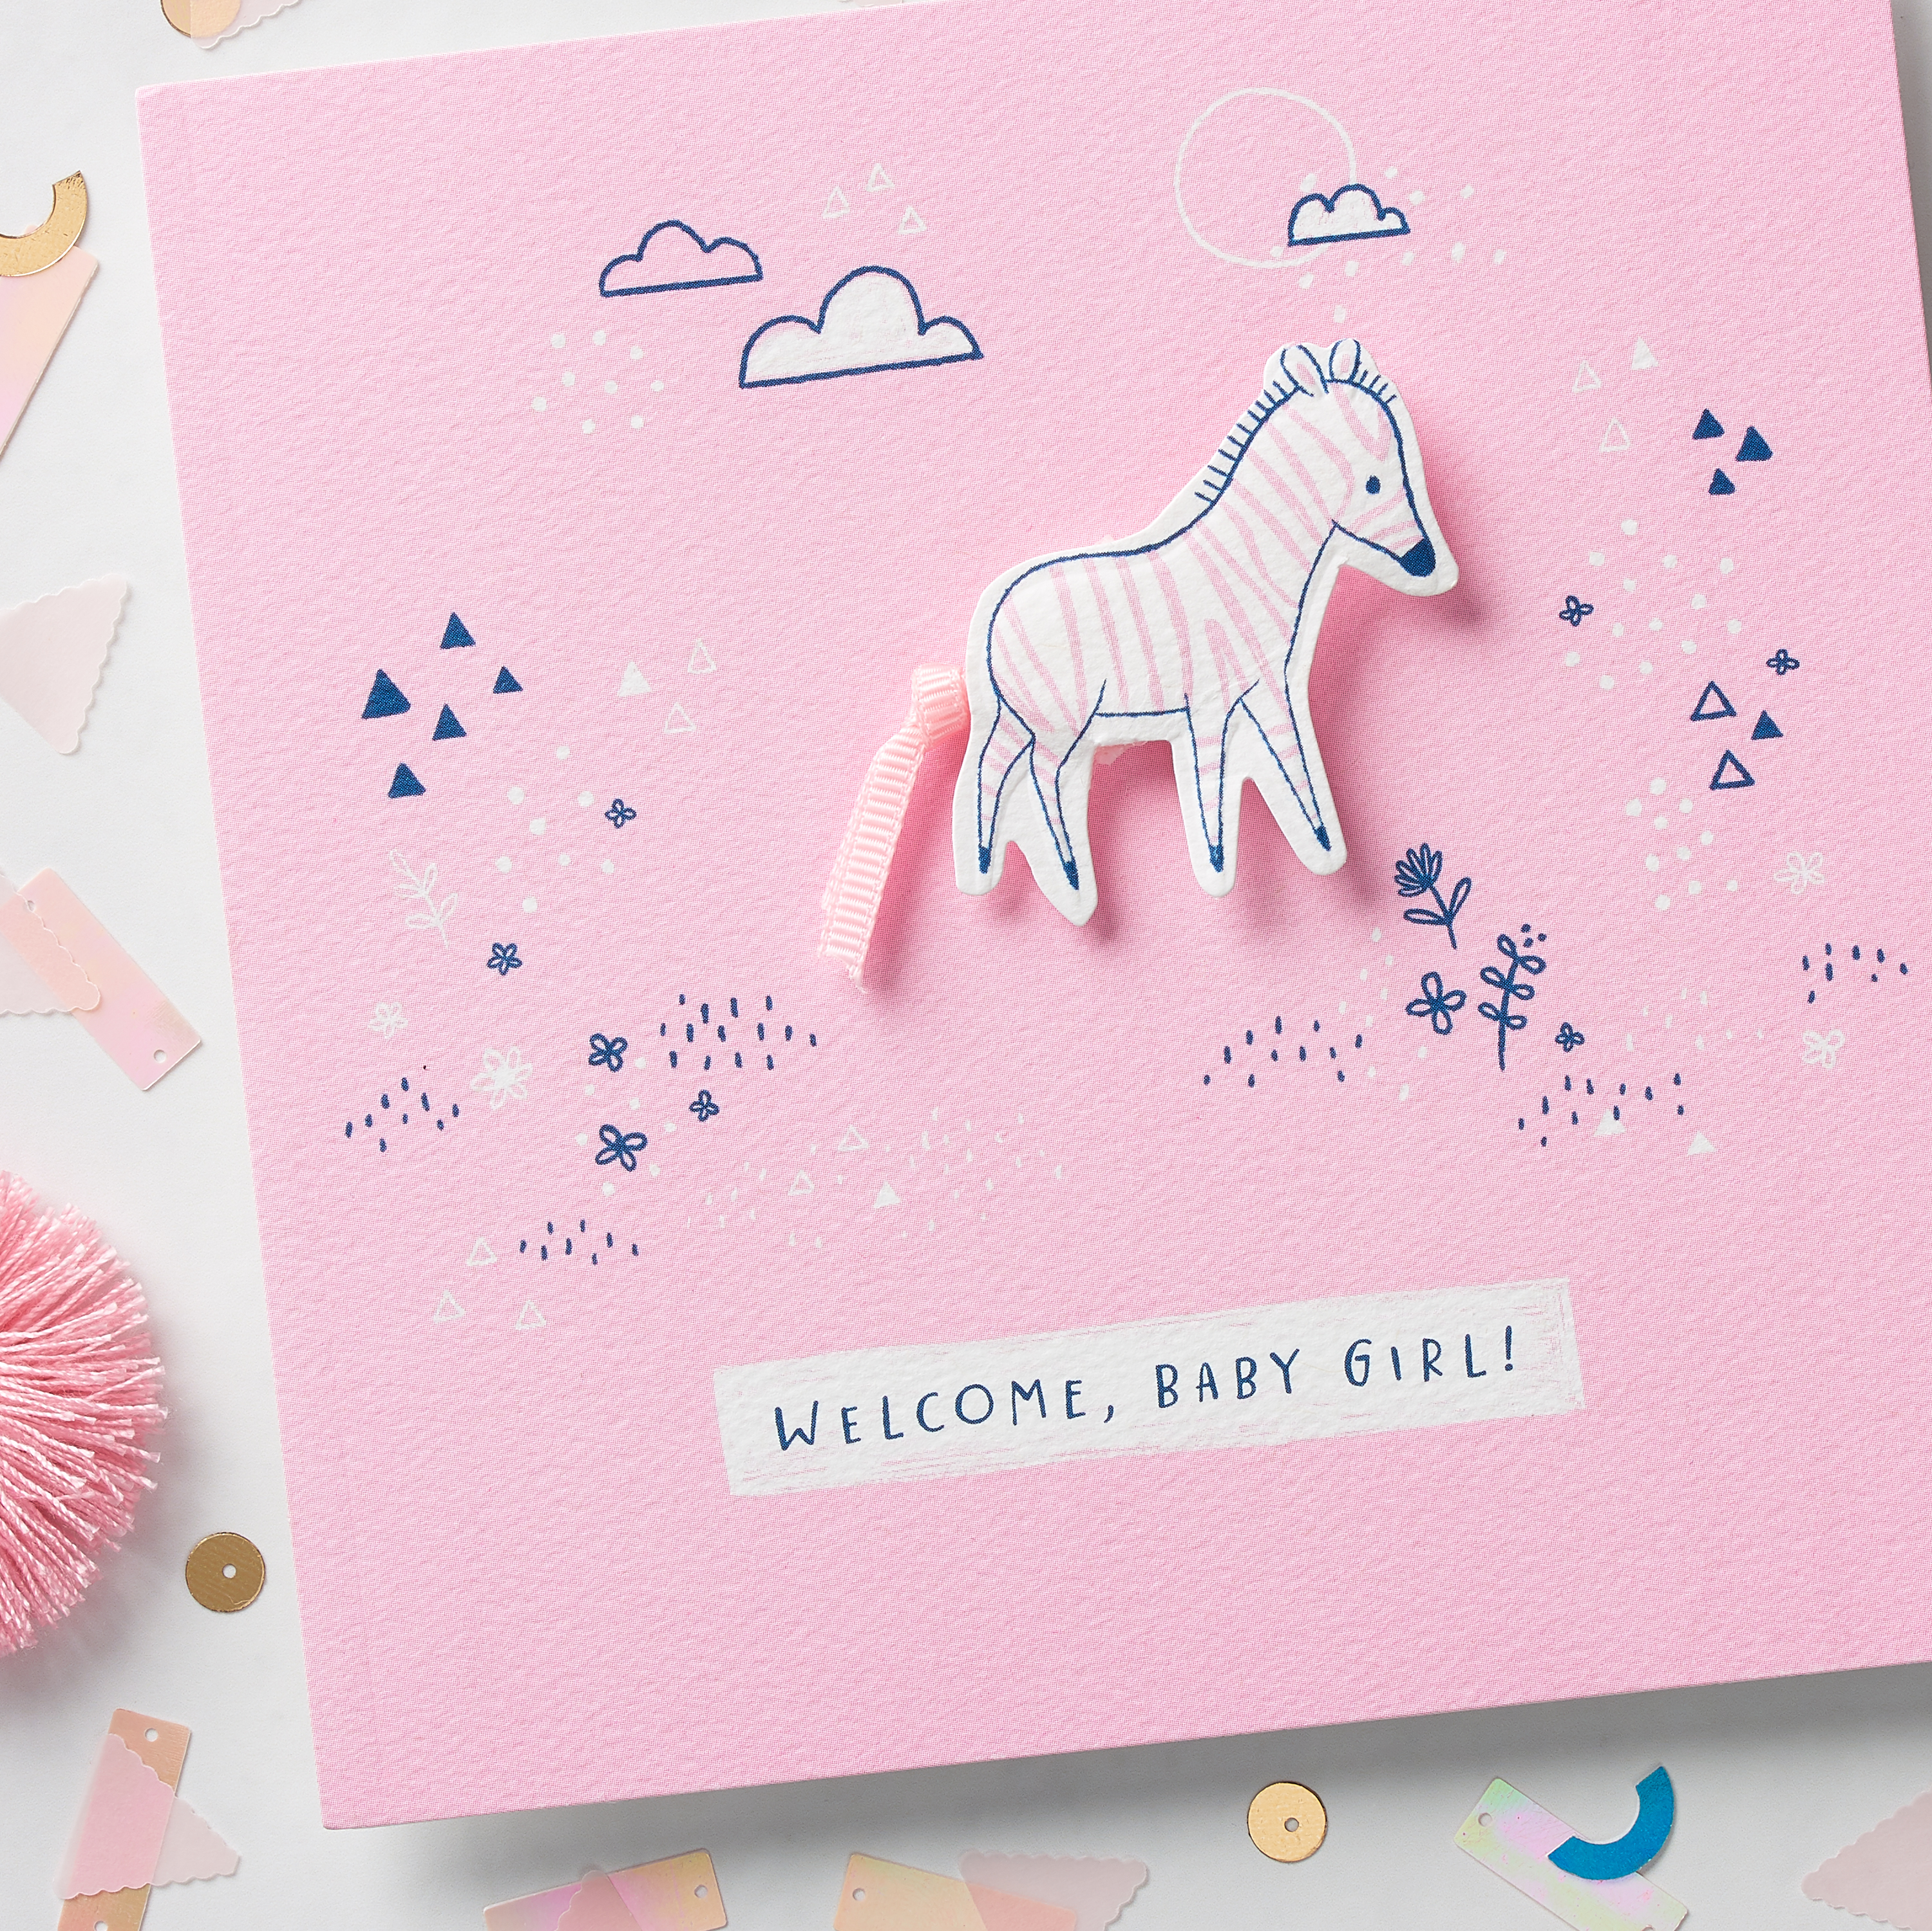 Zebra Baby Girl Congratulations Card image